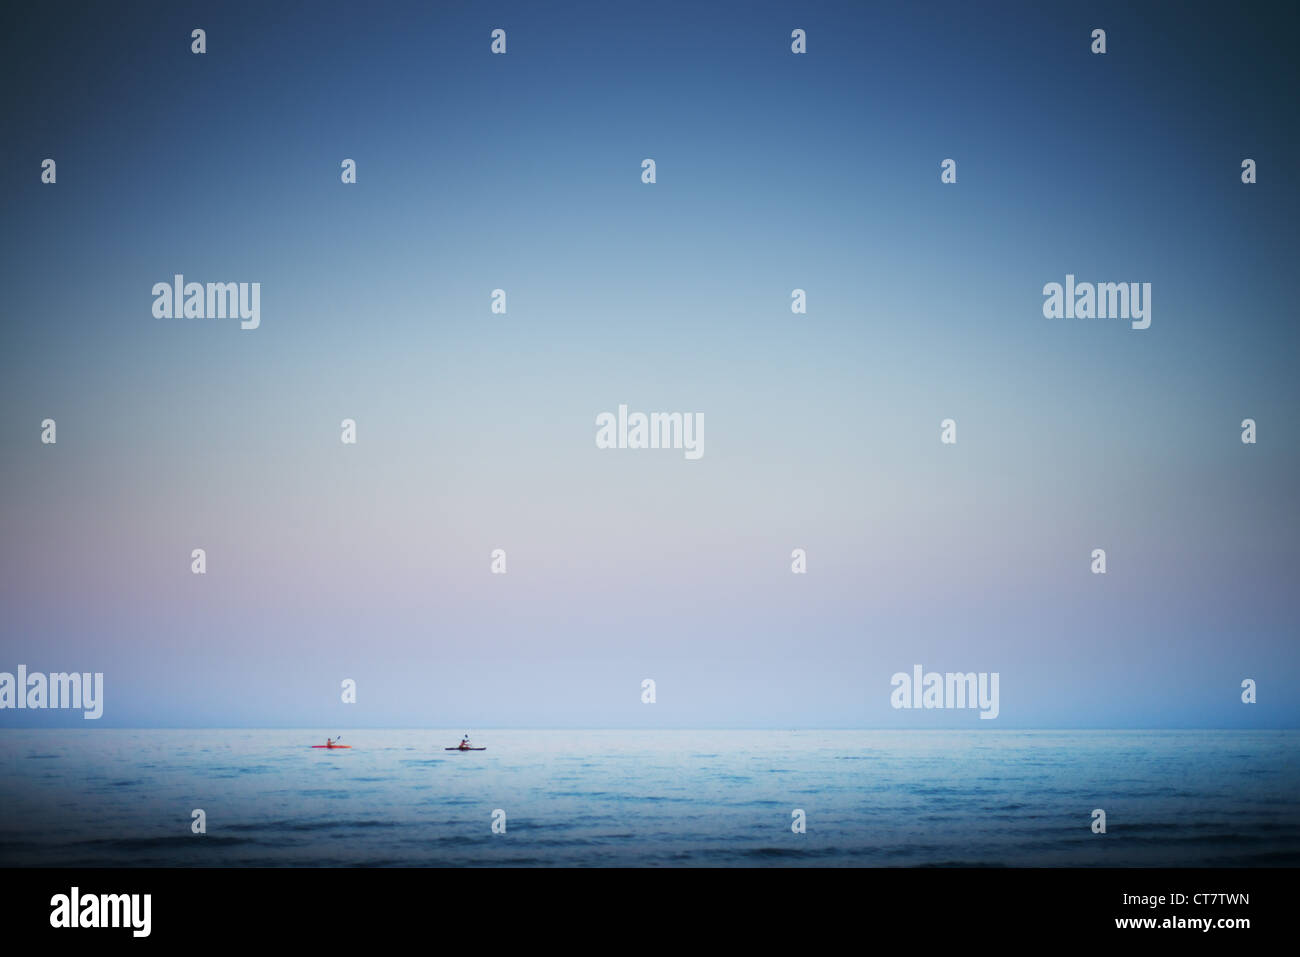 Kayaks in open water. - Stock Image